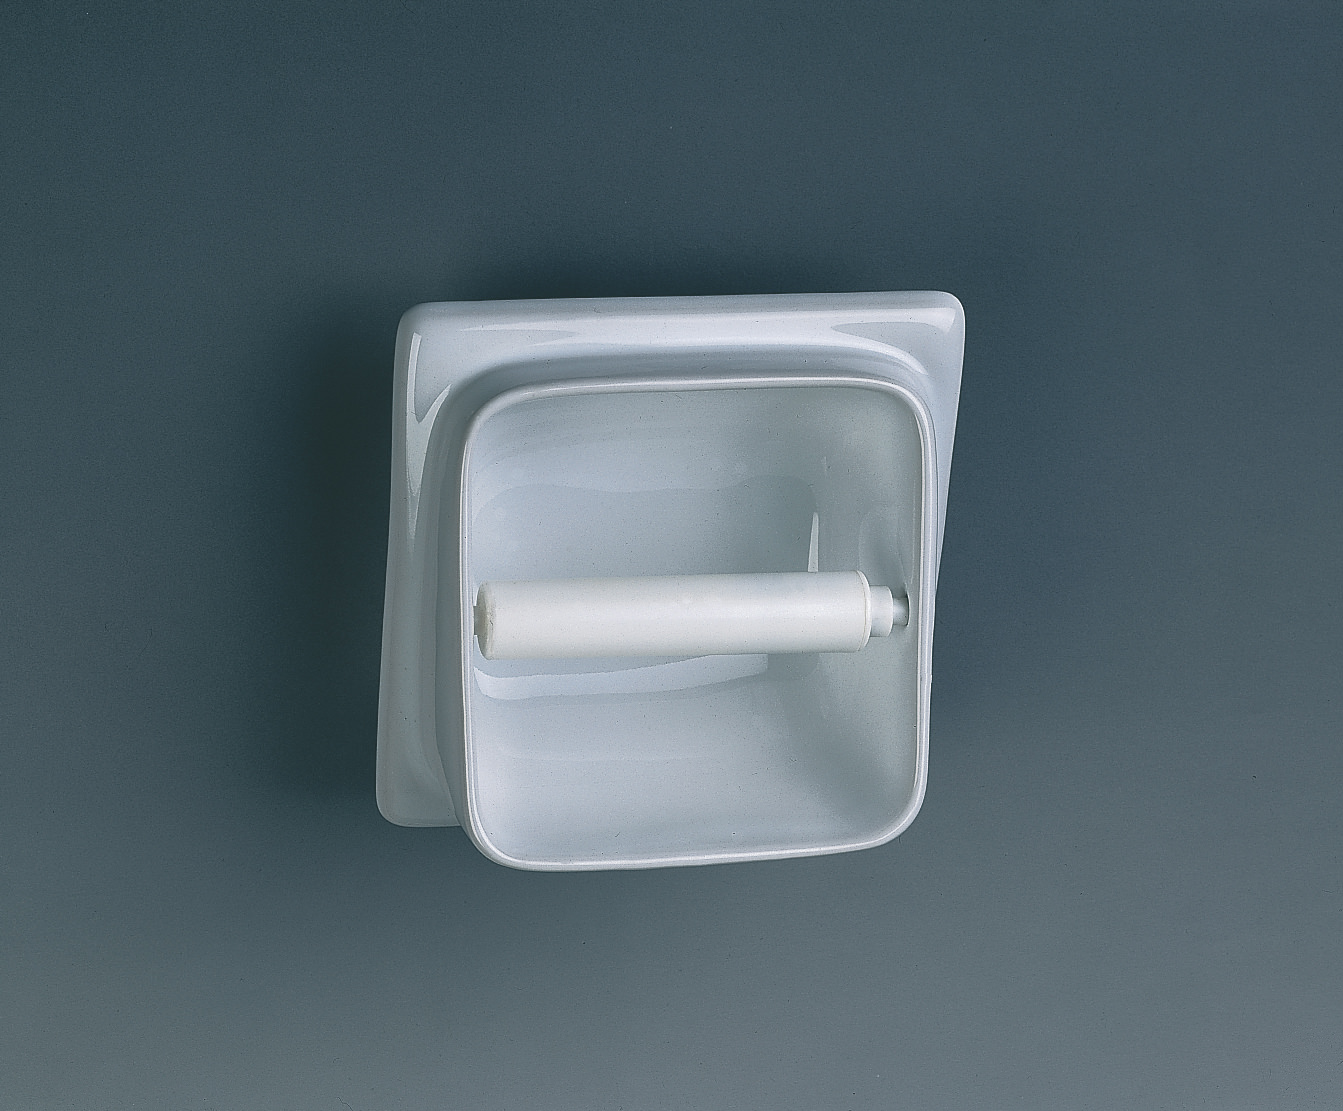 Twyford built in semi recessed toilet roll holder vc9806wh - Ceramic recessed toilet roll holder ...